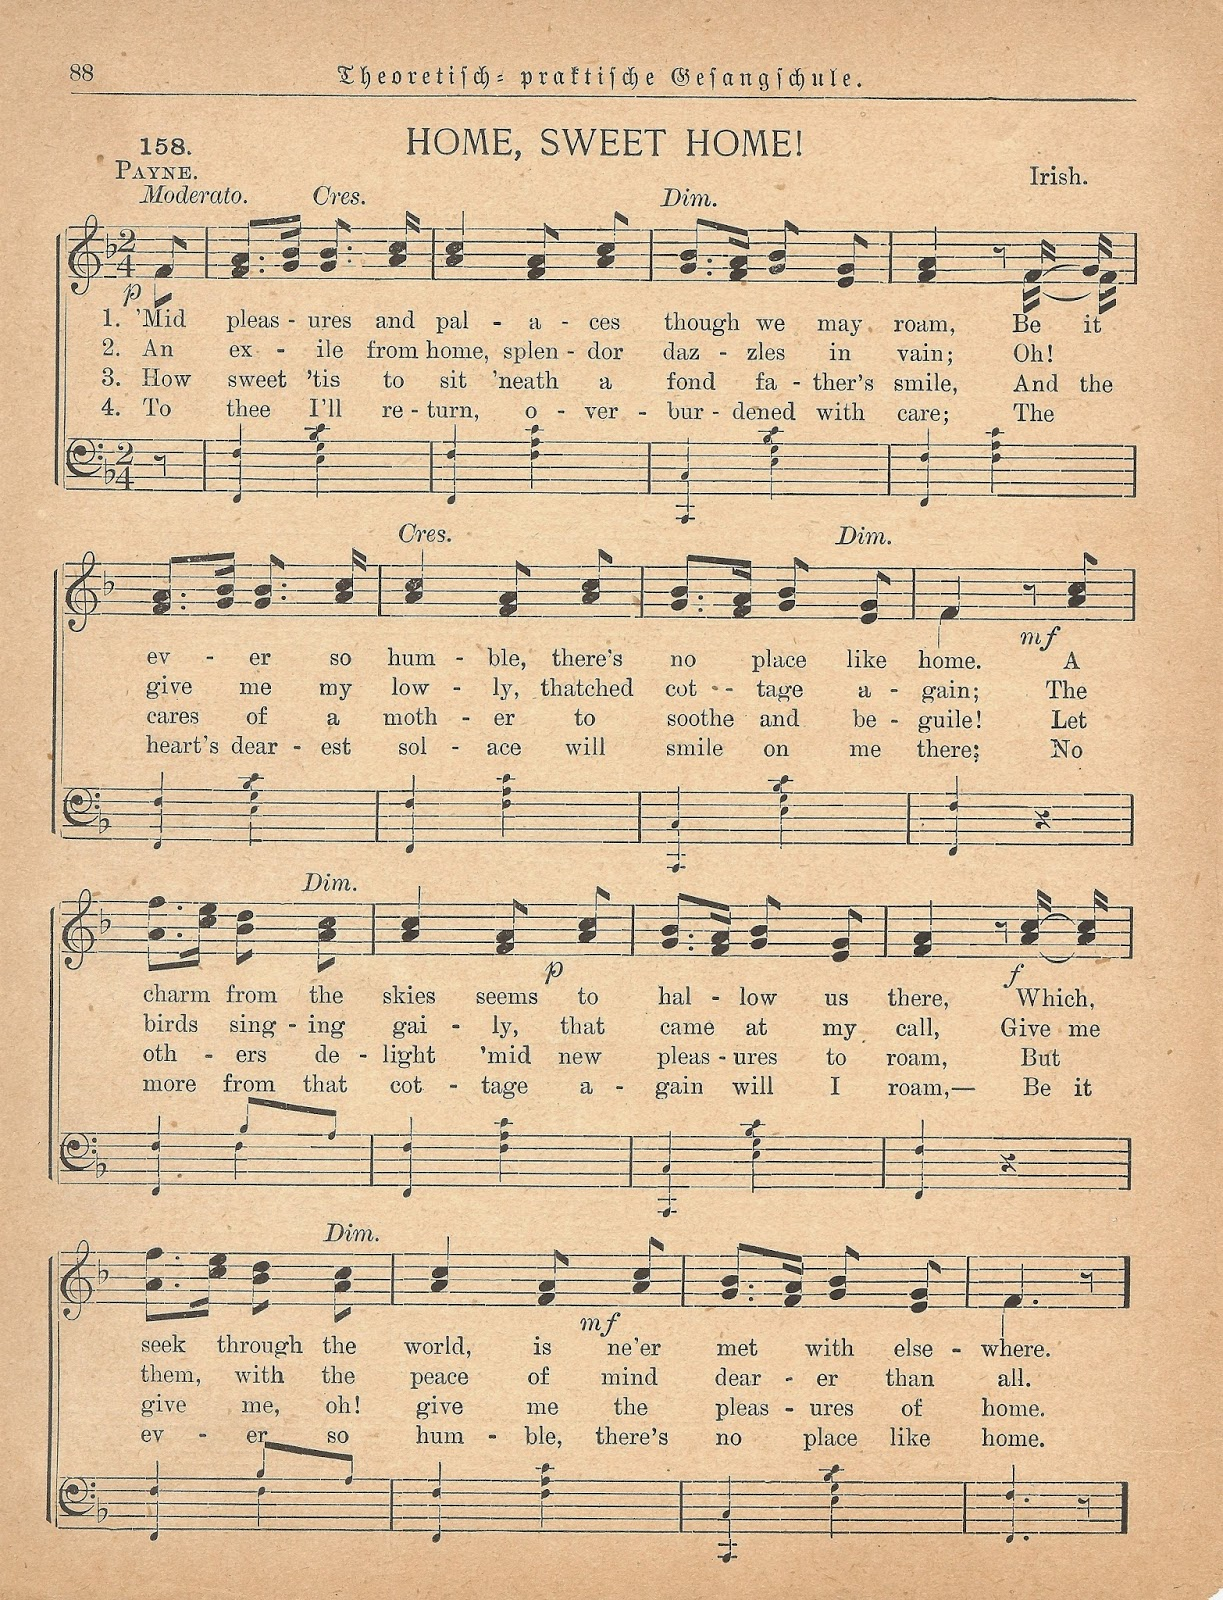 Home Sweet Home Antique Sheet Music Printable | www.knickoftime.net